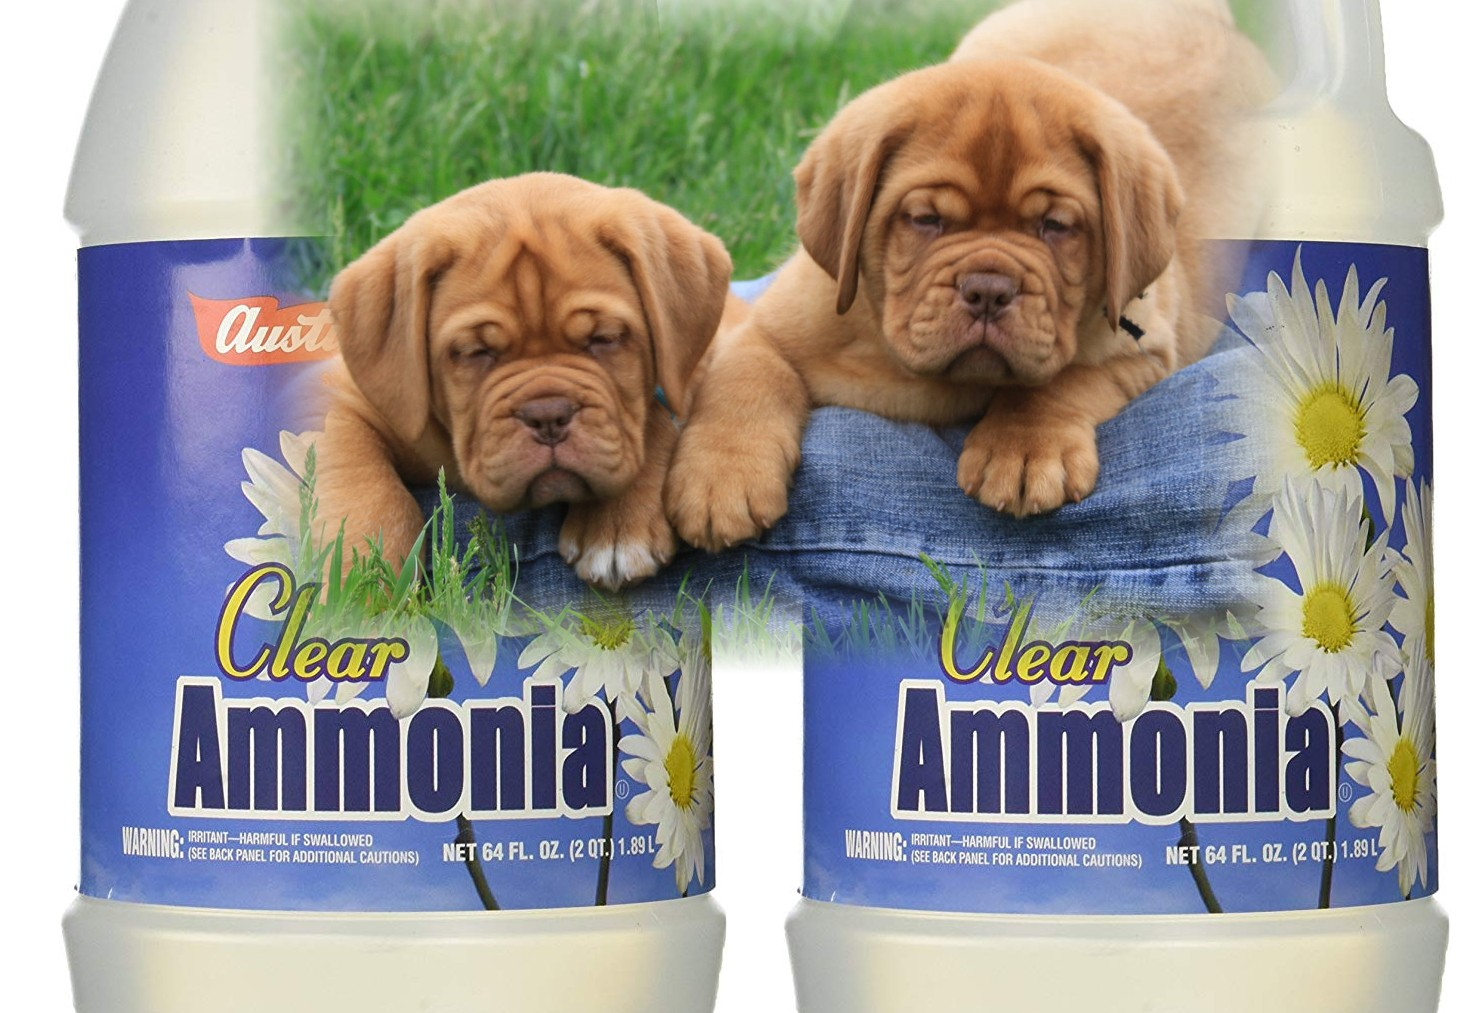 Cleaning Products You Didn't Know Were Dangerous For Your Dog